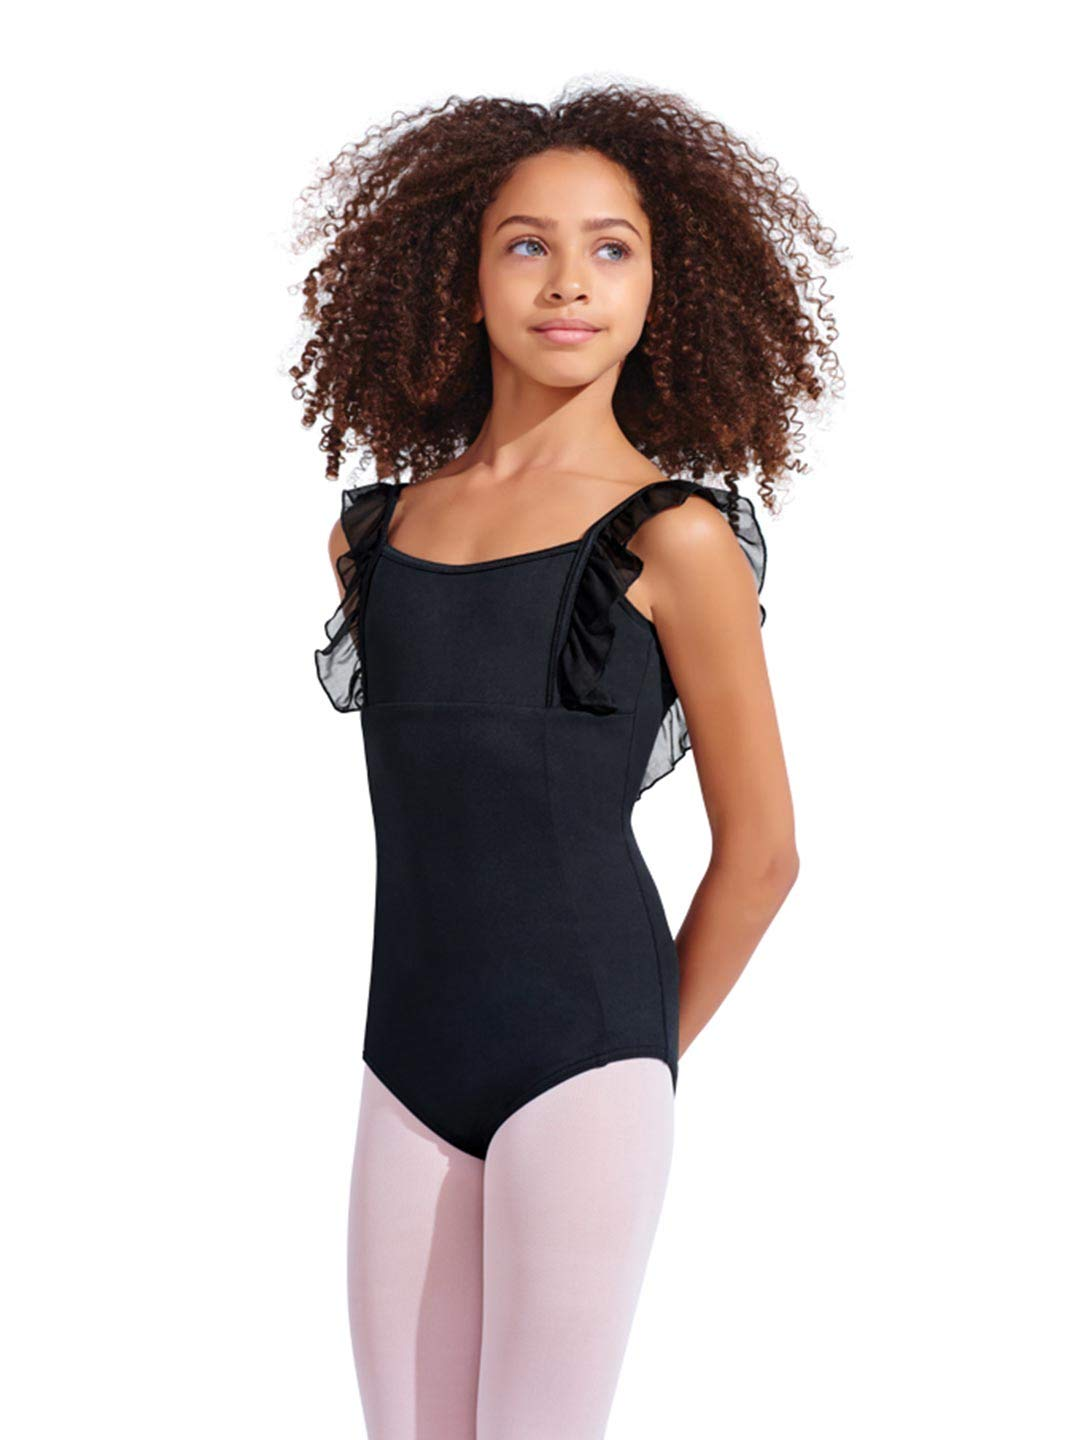 Capezio Girls' Big (7-16) Anastasia Leotard, Black, Large (10-12) by Capezio